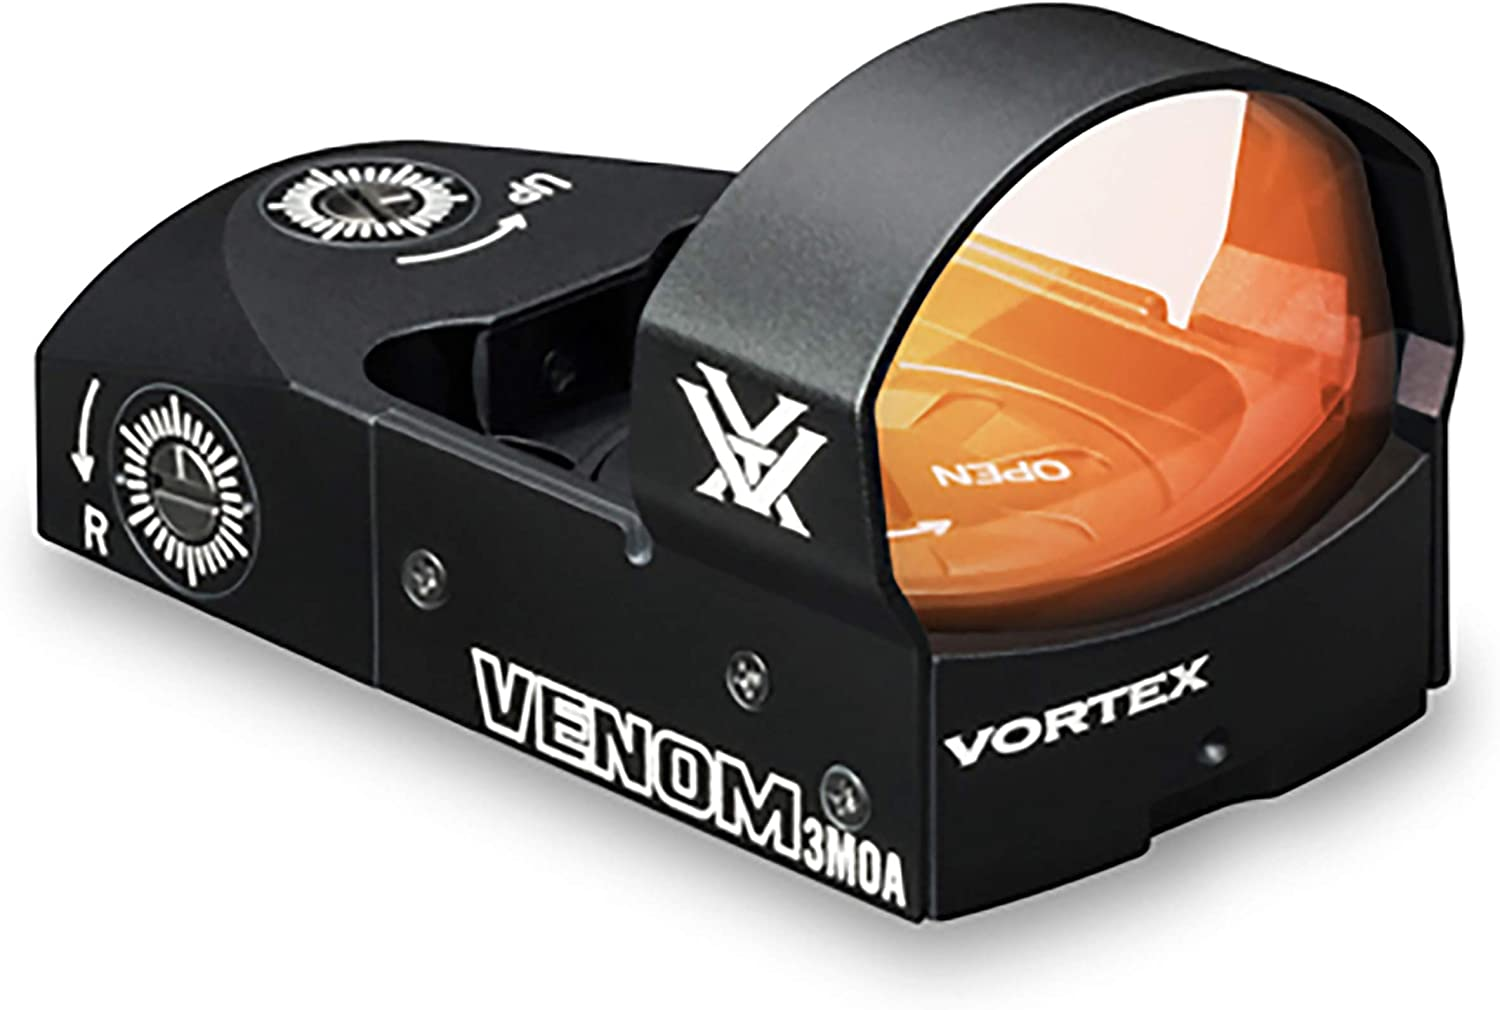 3. Vortex Optics Venom Red Dot Sights